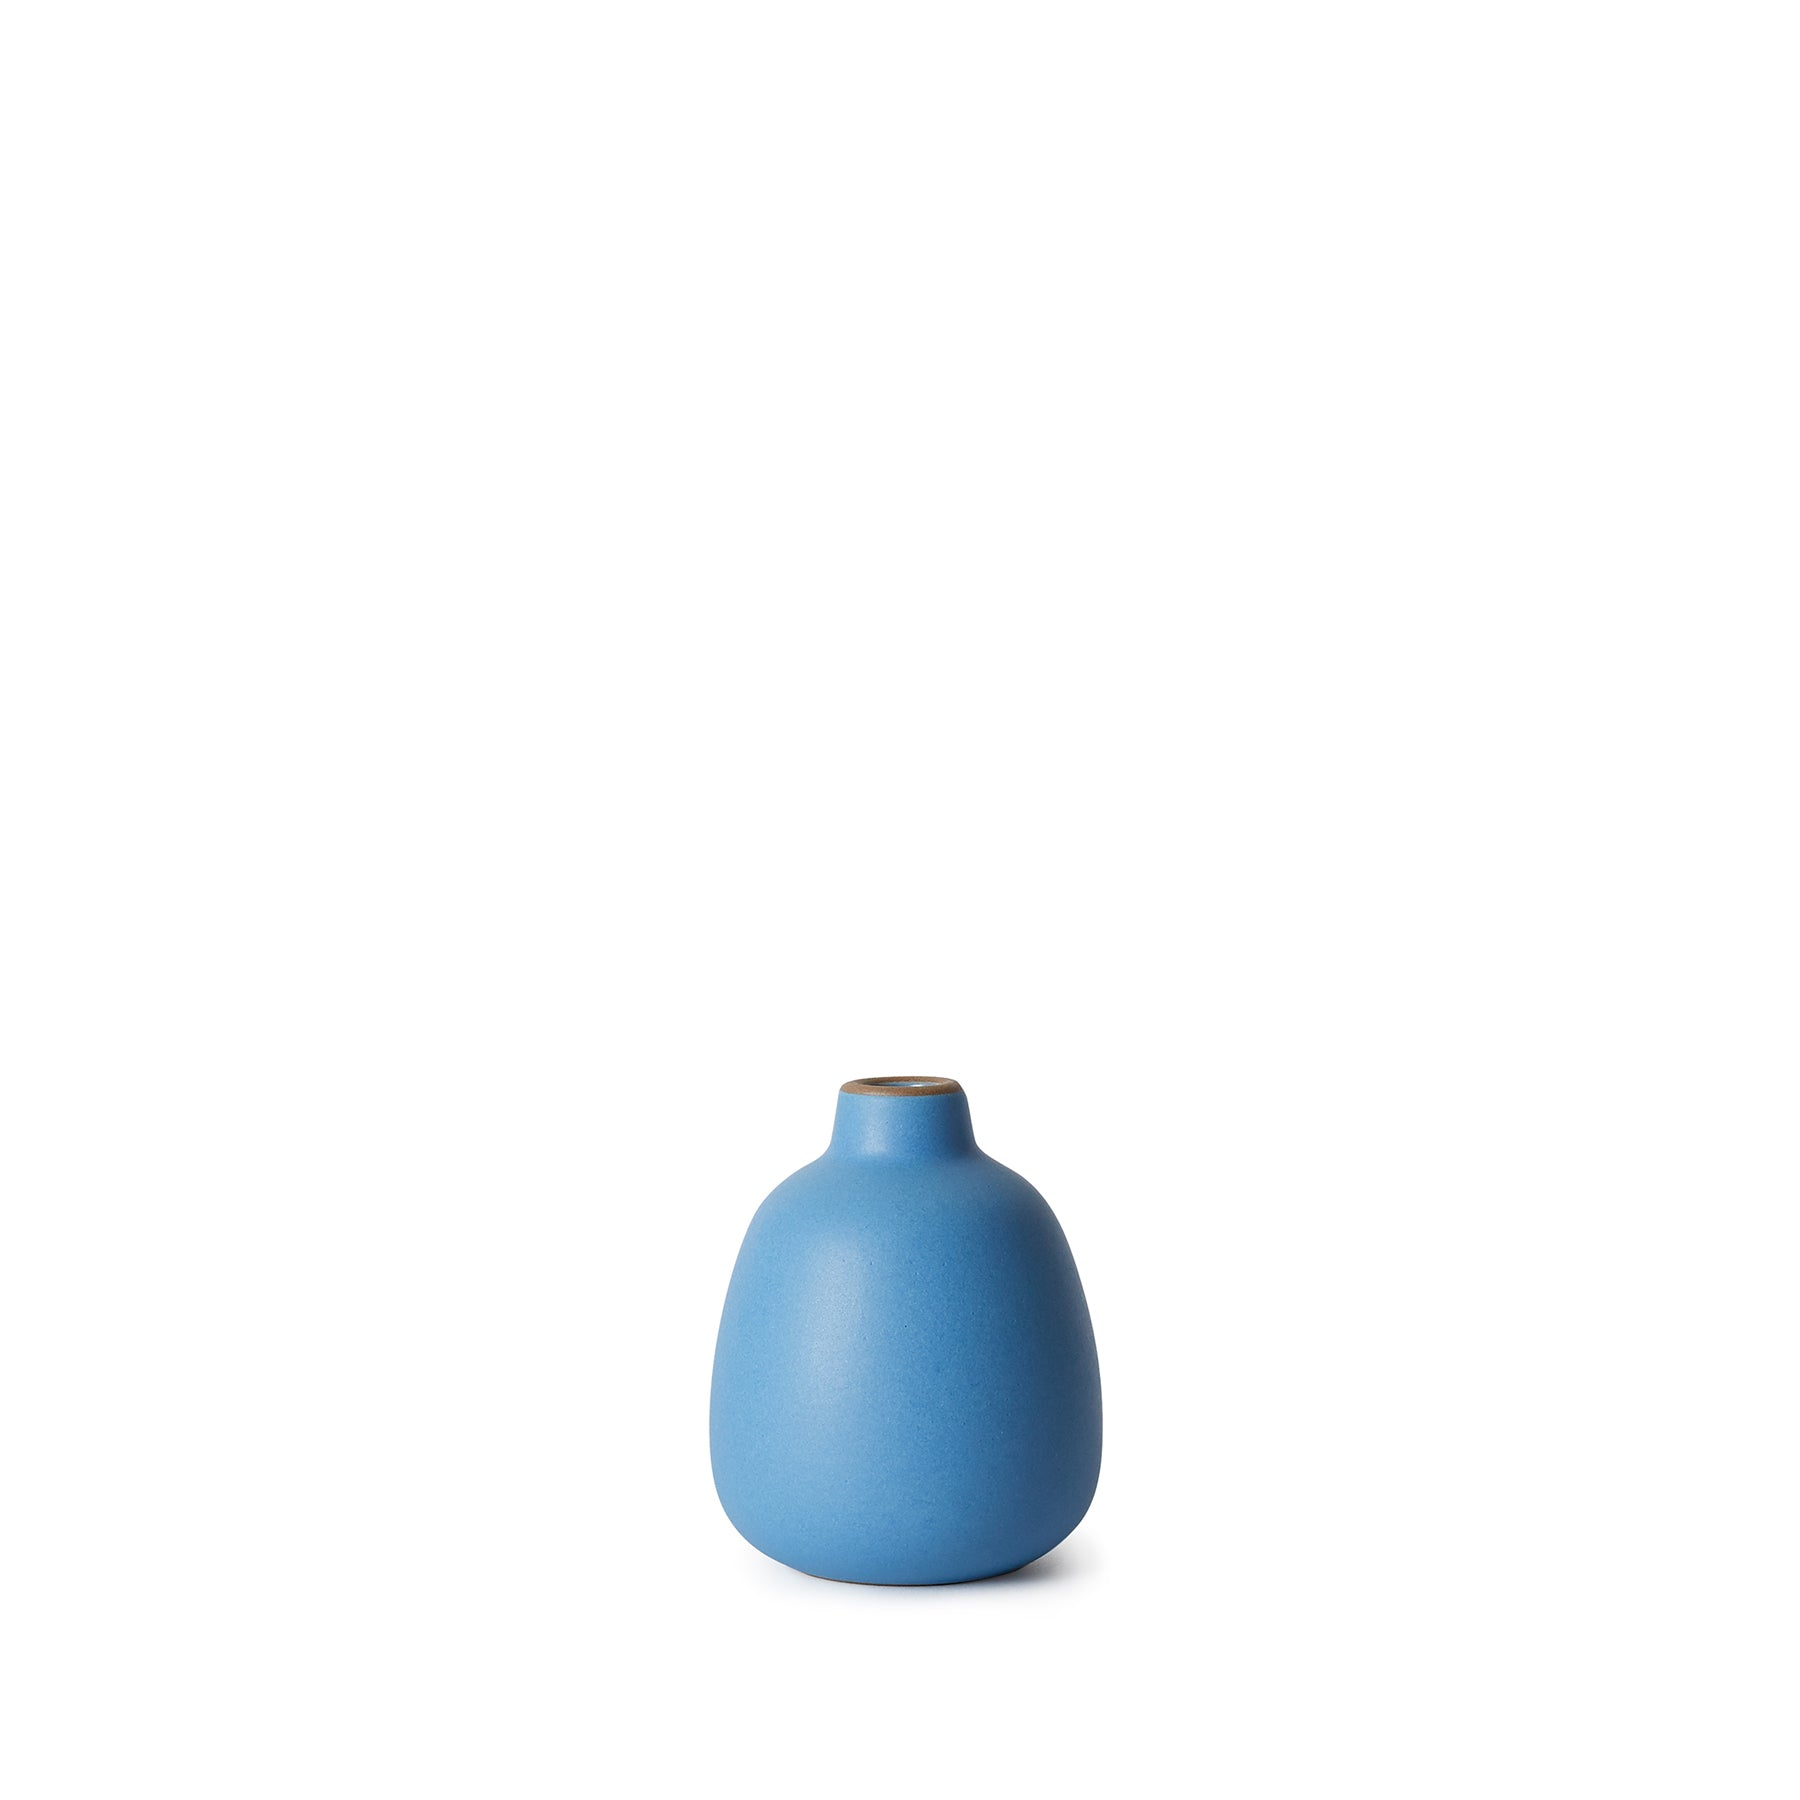 Bud Vase in Bright Blue Zoom Image 1